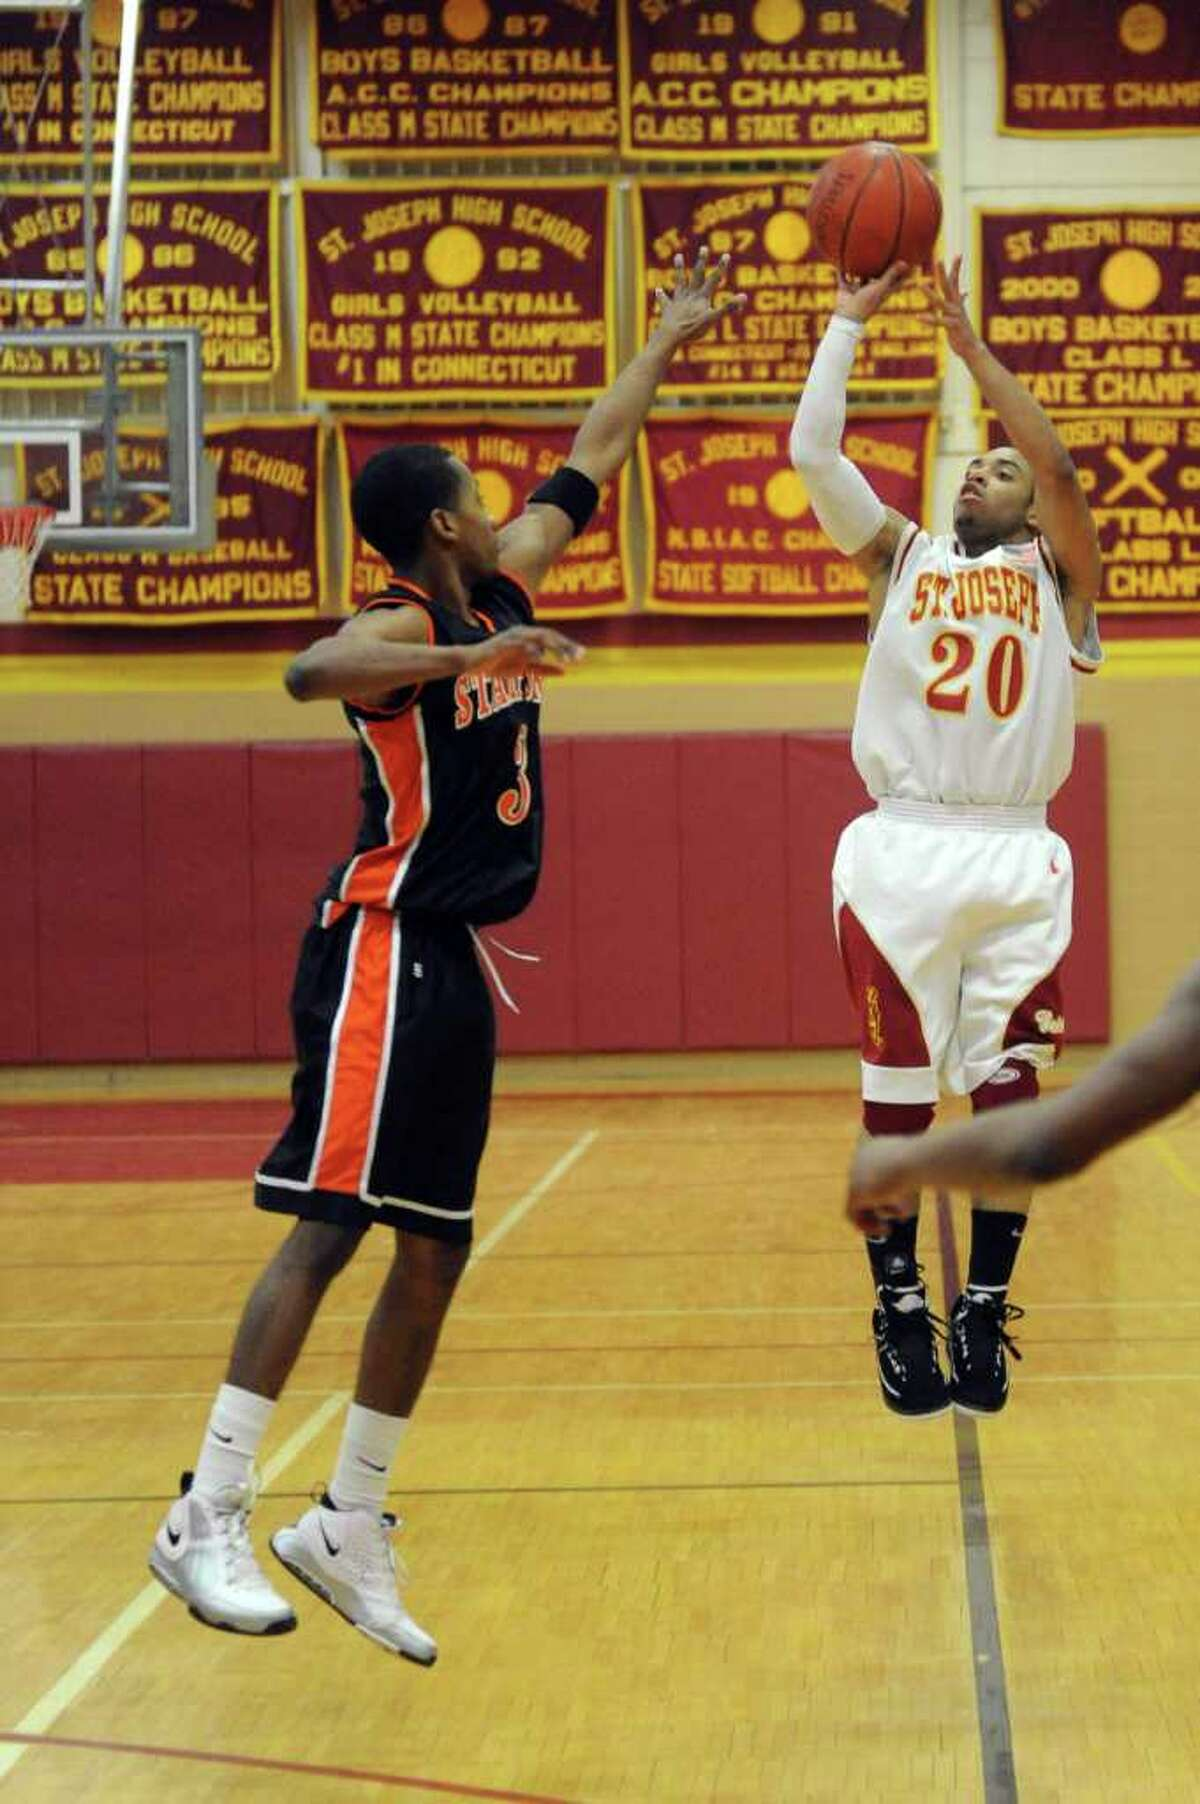 St. Joseph's James Jennings takes a shot as Stamford's Anthony Davis reaches to block during Wednesday's game at St. Joseph's High School on March 9, 2011.